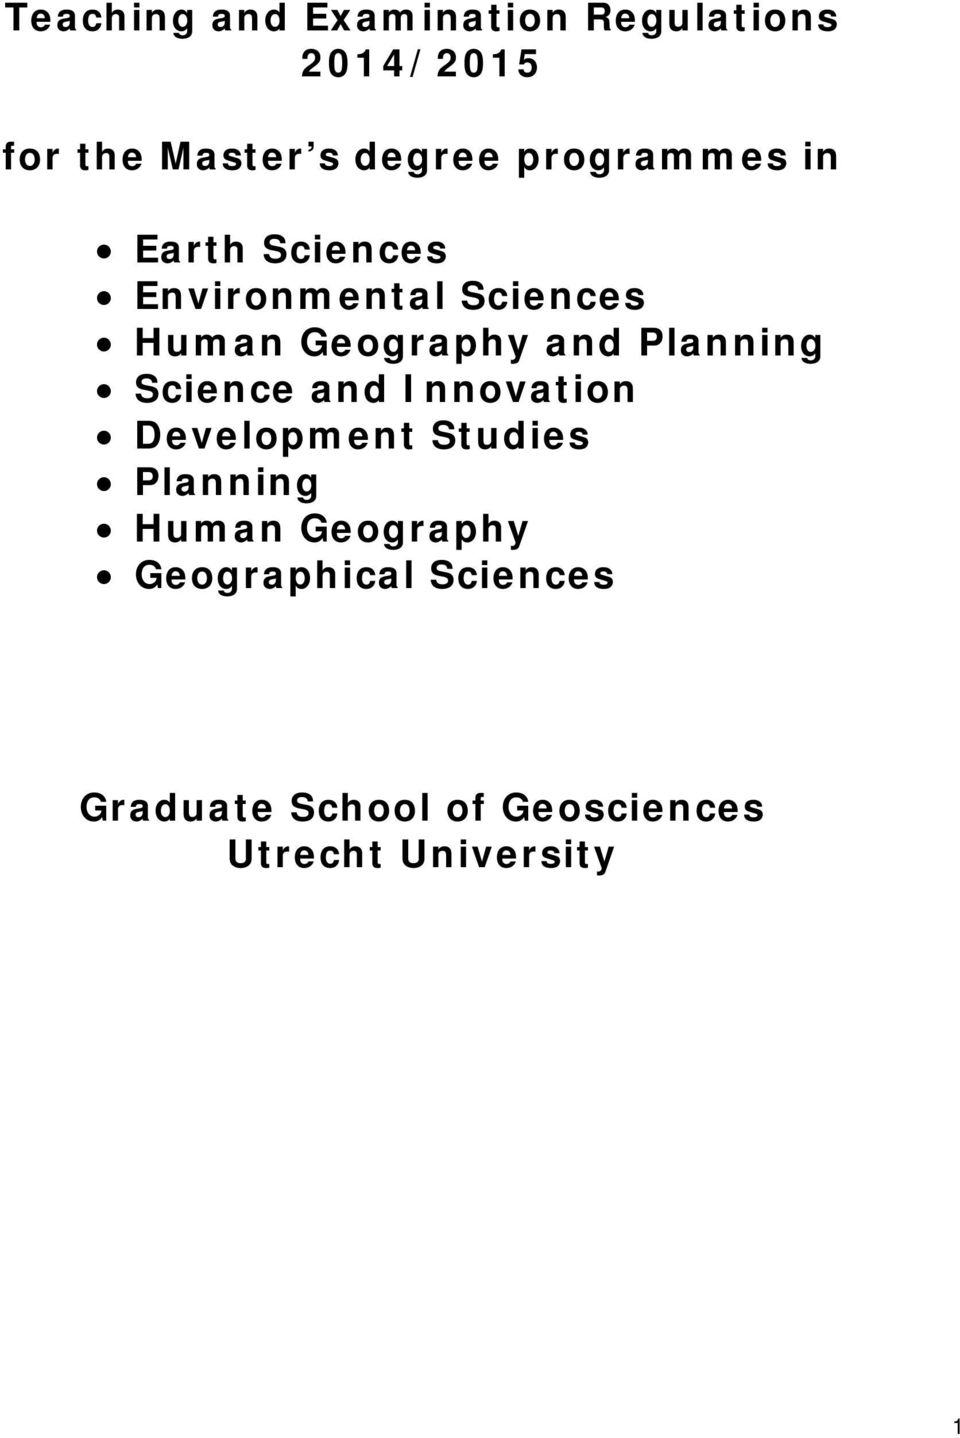 Planning Science and Innovation Development Studies Planning Human